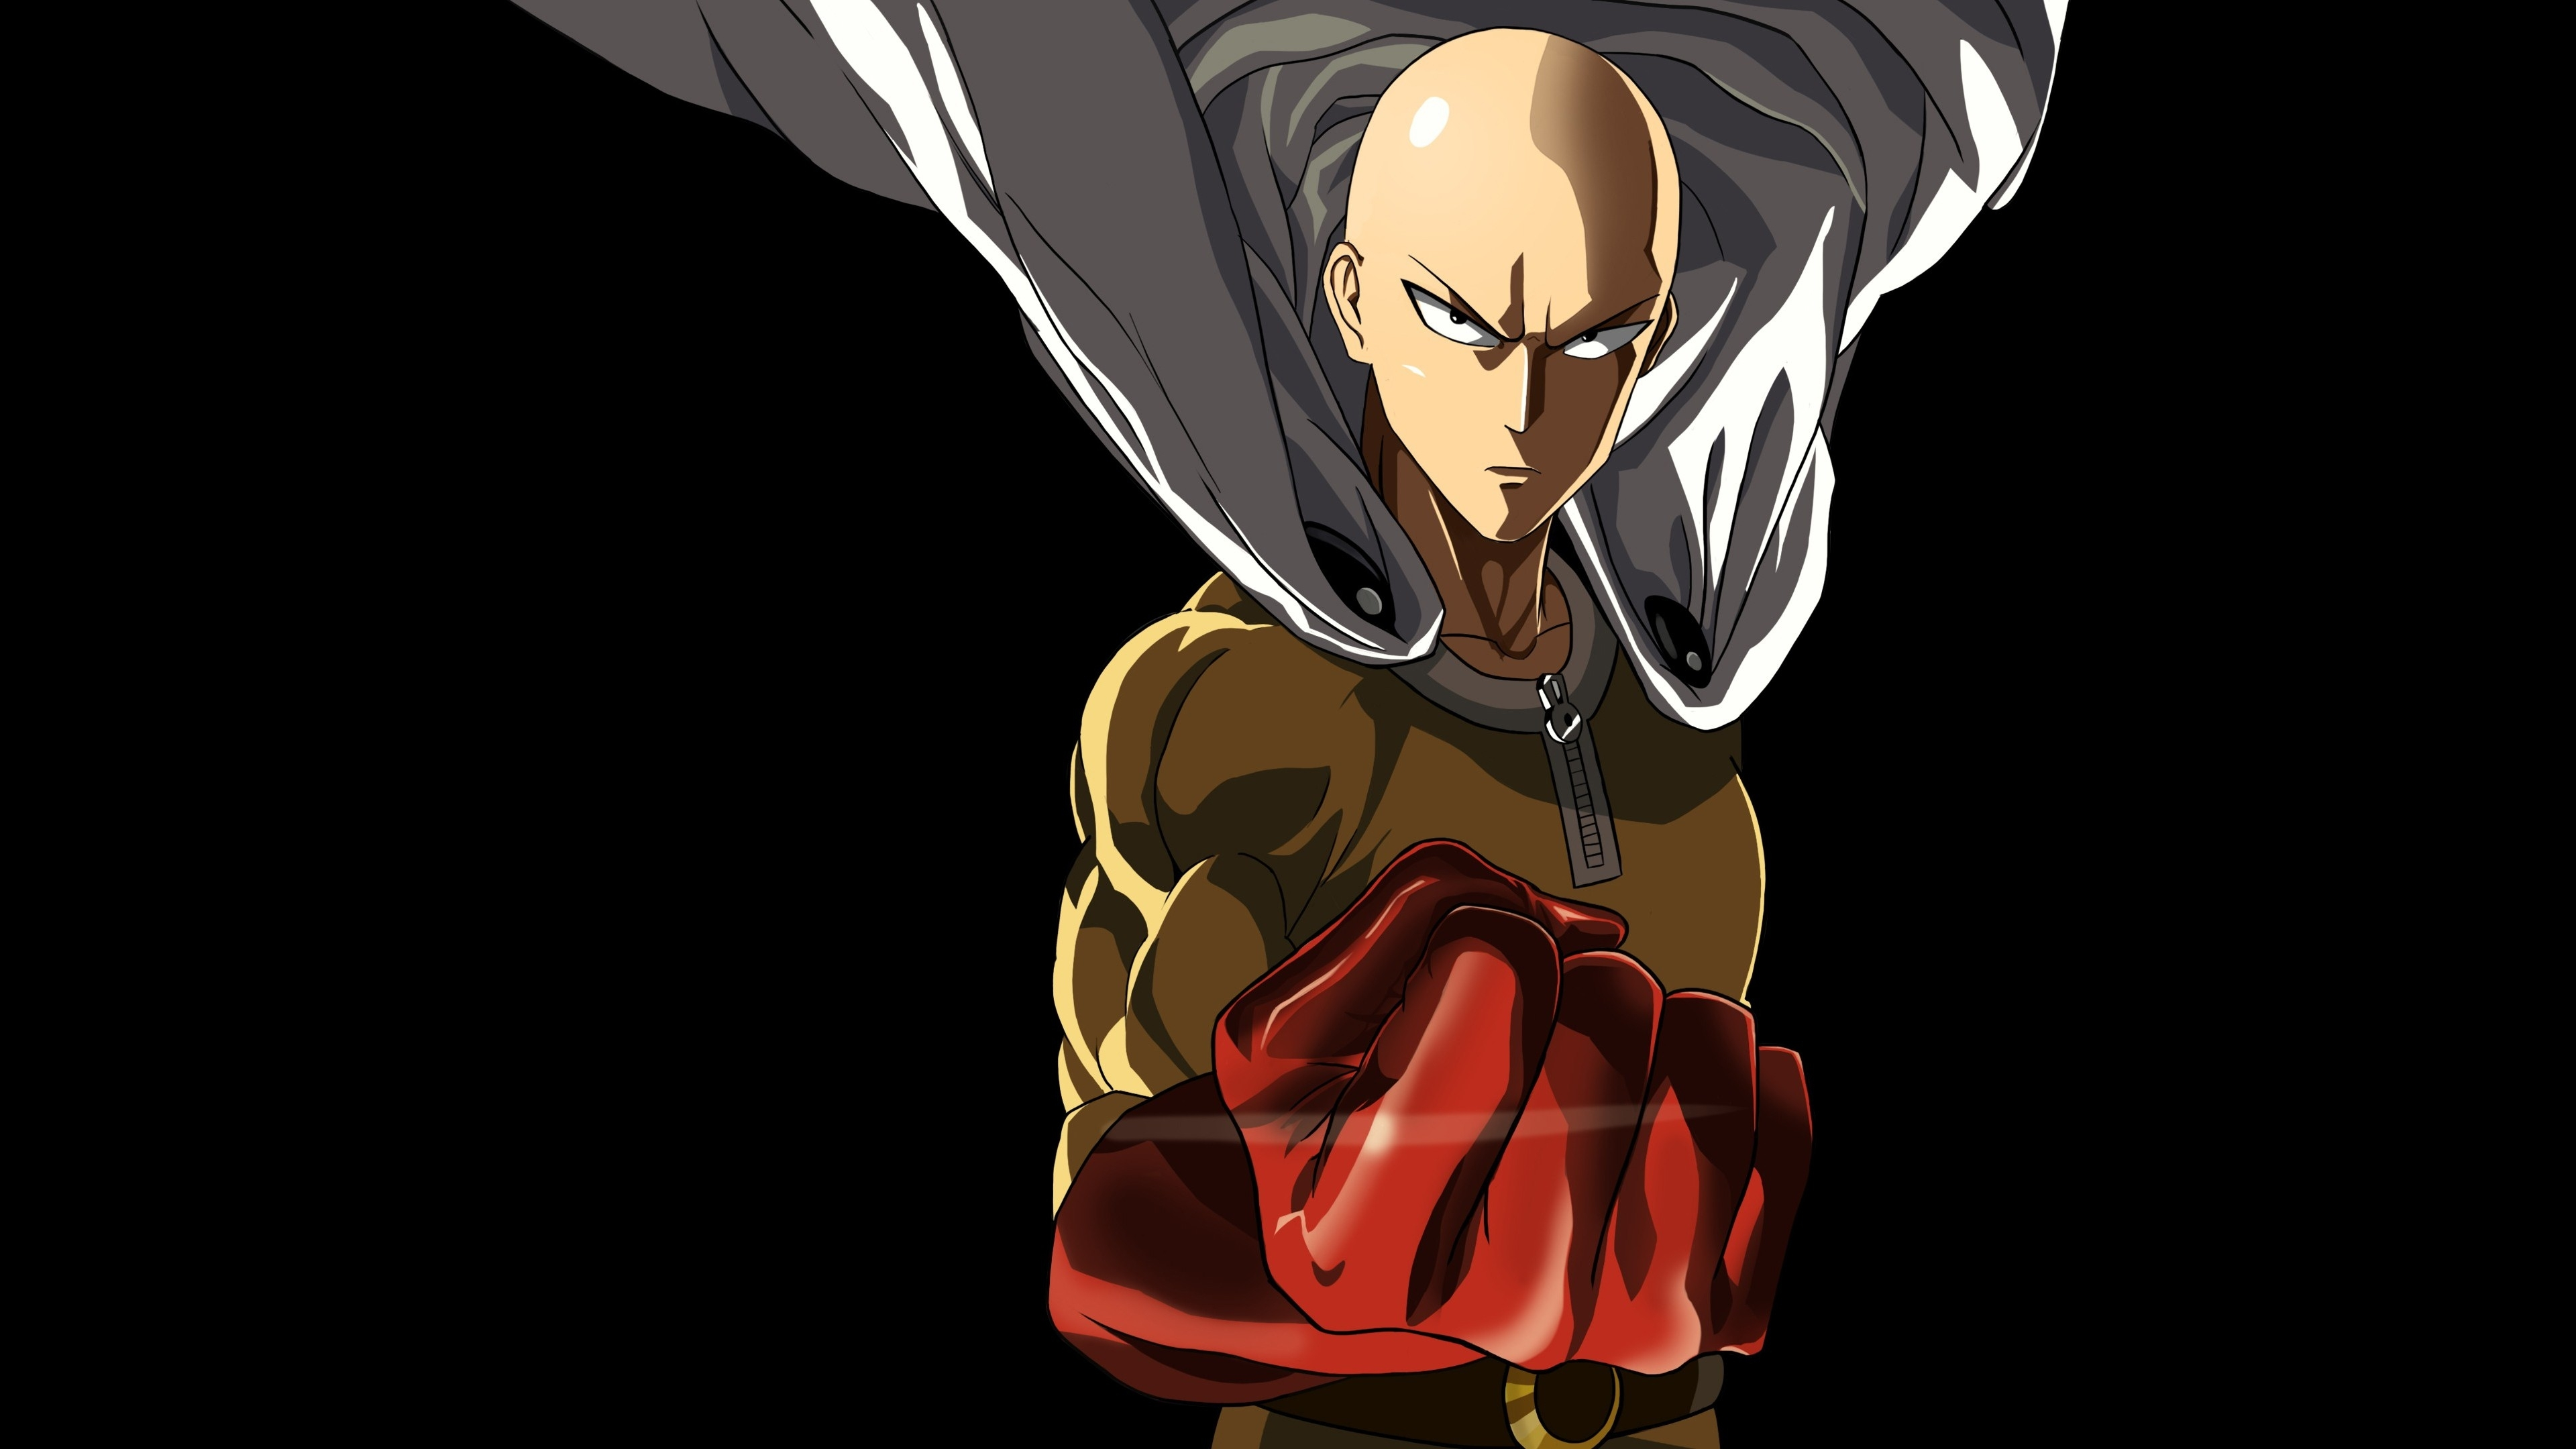 saitama one punch man wallpapers | hd wallpapers | id #16960